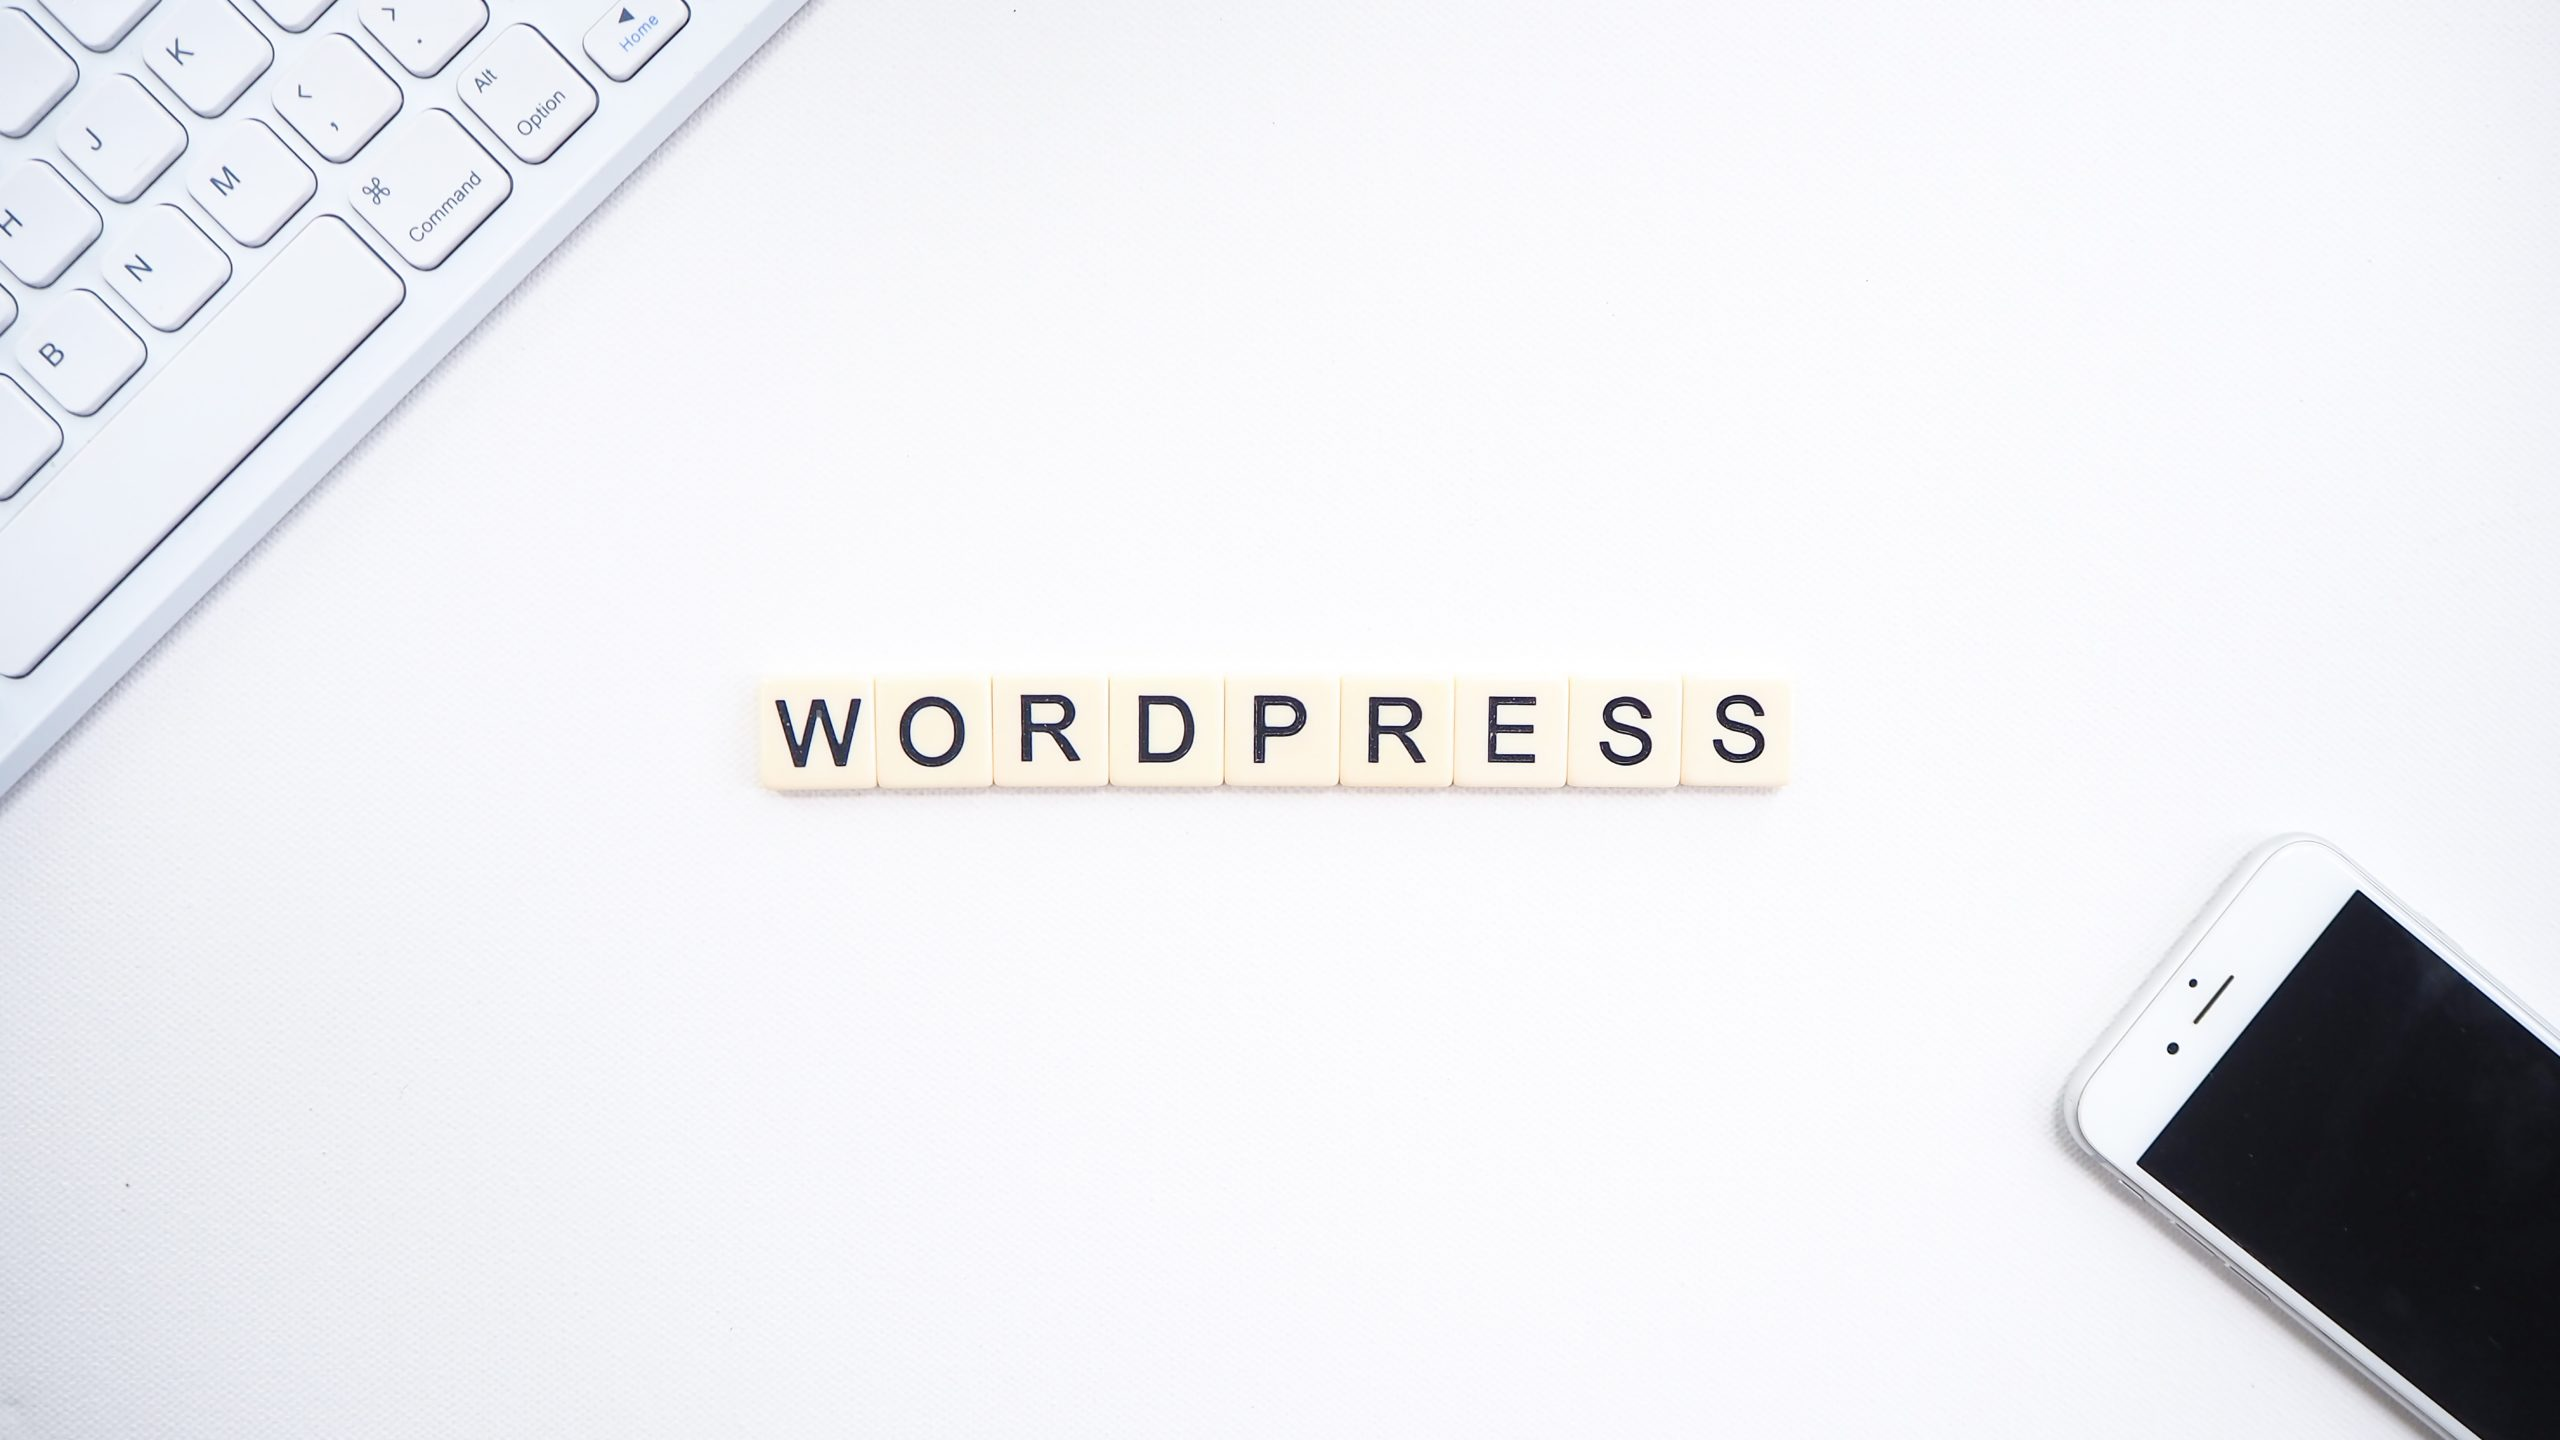 A beginners guide to create a simple WordPress website